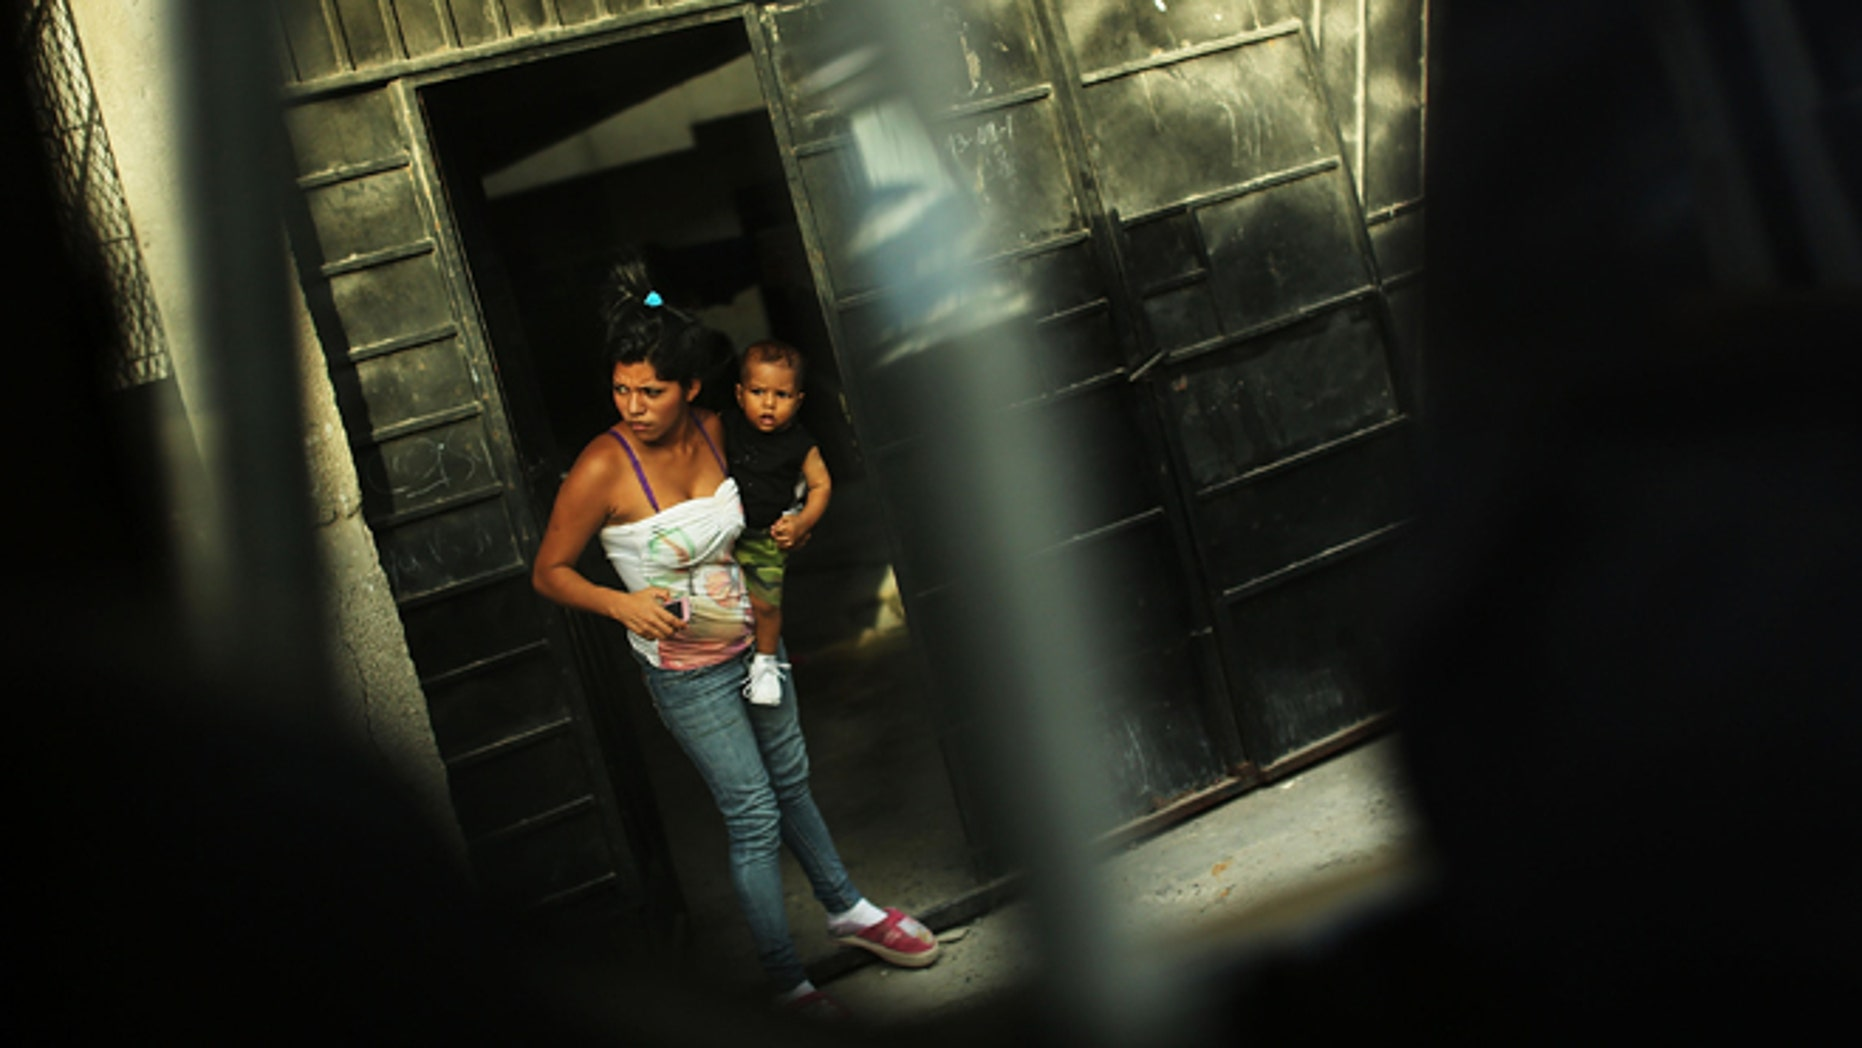 TEGUCIGALPA, HONDURAS - JULY 20: A woman and her son look out of a doorway in a neighborhood with heavy gang violence on July 20, 2012 in Tegucigalpa, Honduras. Honduras now has the highest per capita murder rate in the world and its capital city, Tegucigalpa, is plagued by violence, poverty, homelessness and sexual assaults. With an estimated 80% of the cocaine entering the United States now being trans-shipped through Honduras, the violence on the streets is a spillover from the ramped rise in narco-trafficking.  (Photo by Spencer Platt/Getty Images)